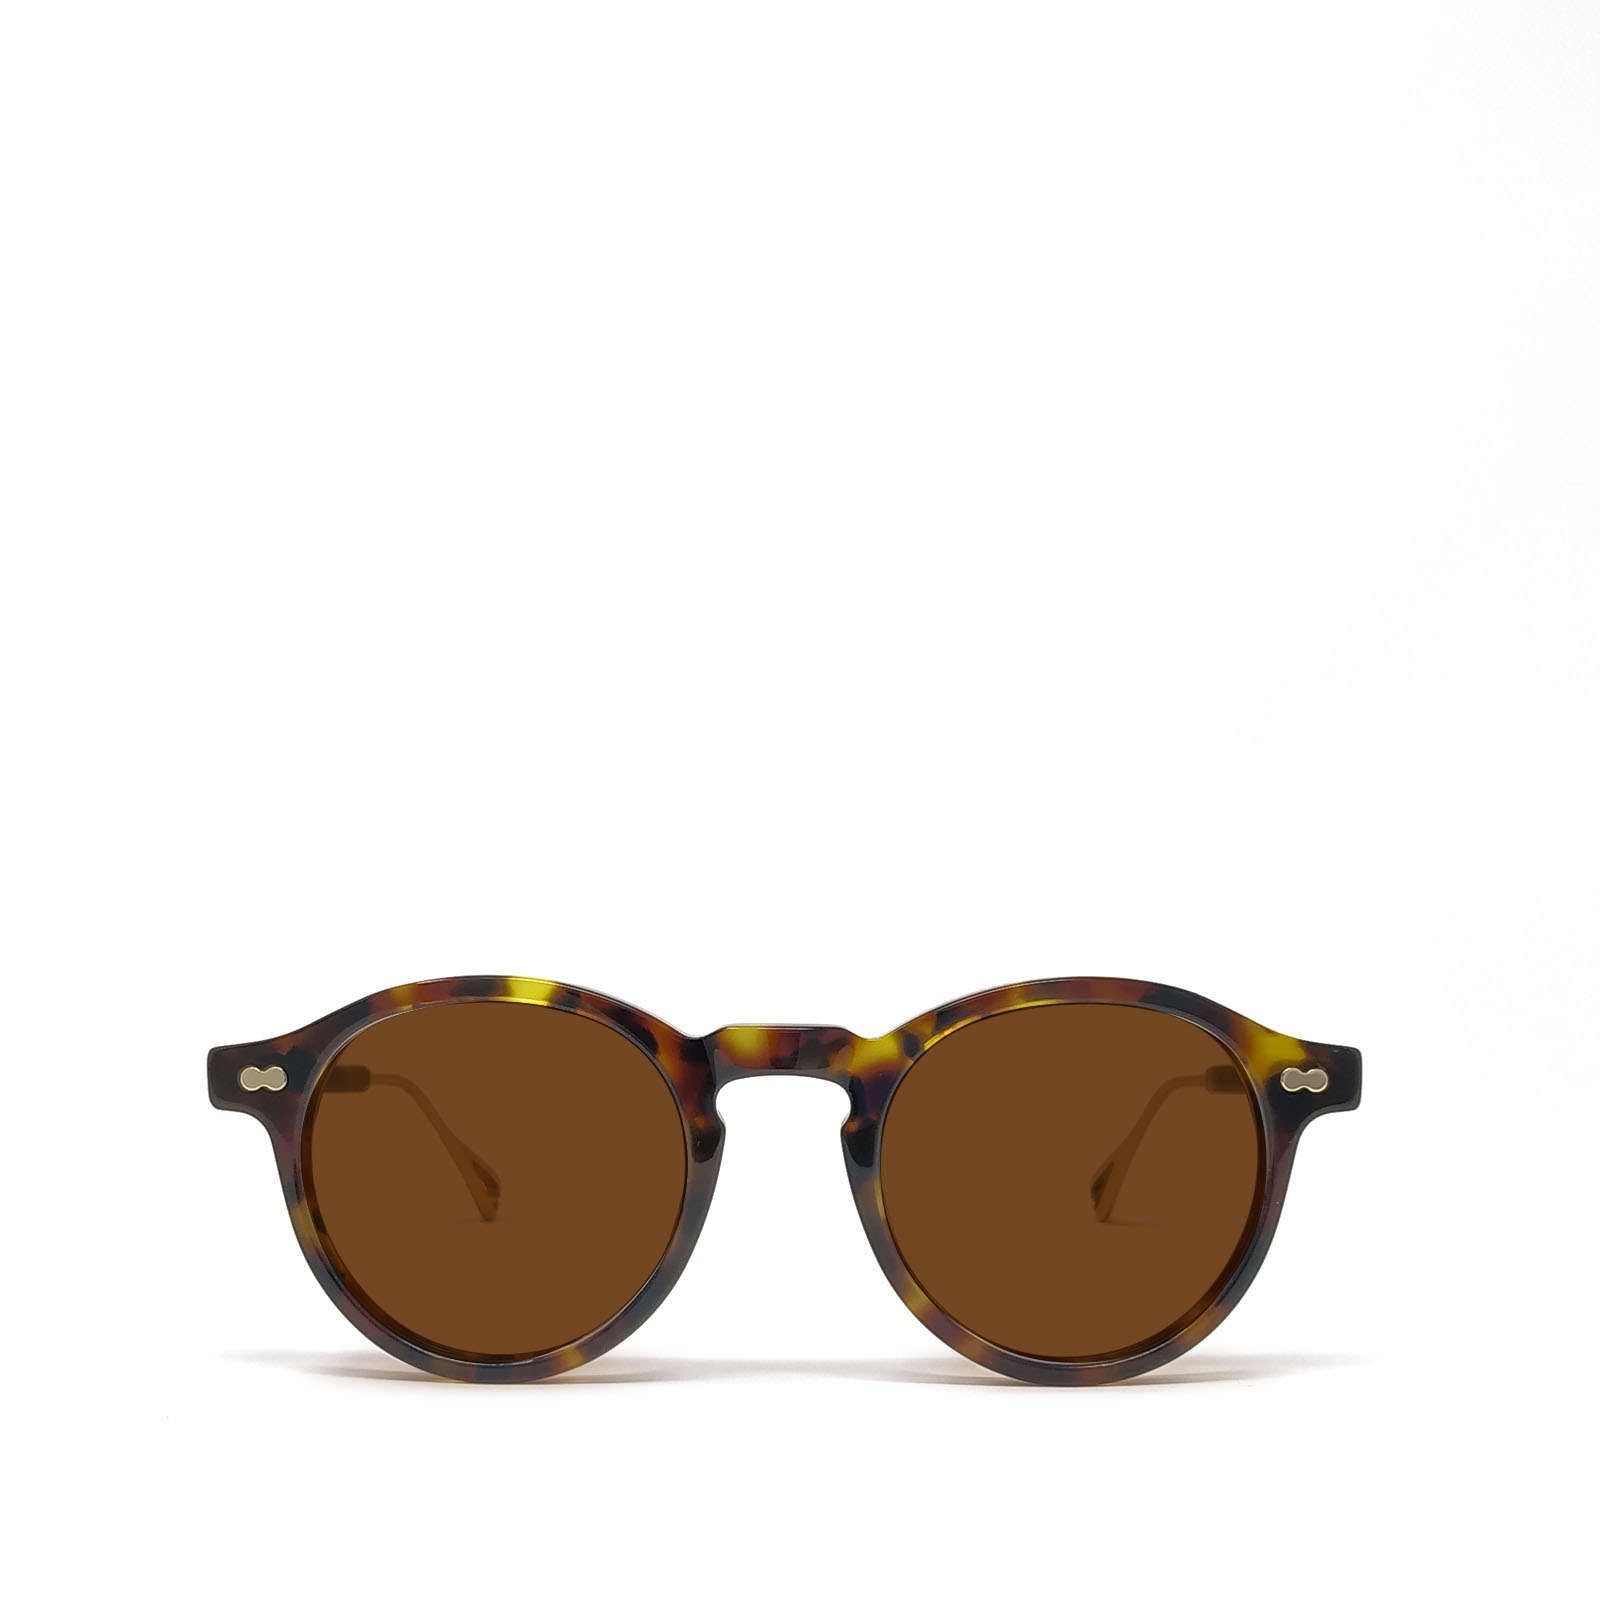 Moscot MOSCOT WOMEN'S BROWN ACETATE SUNGLASSES